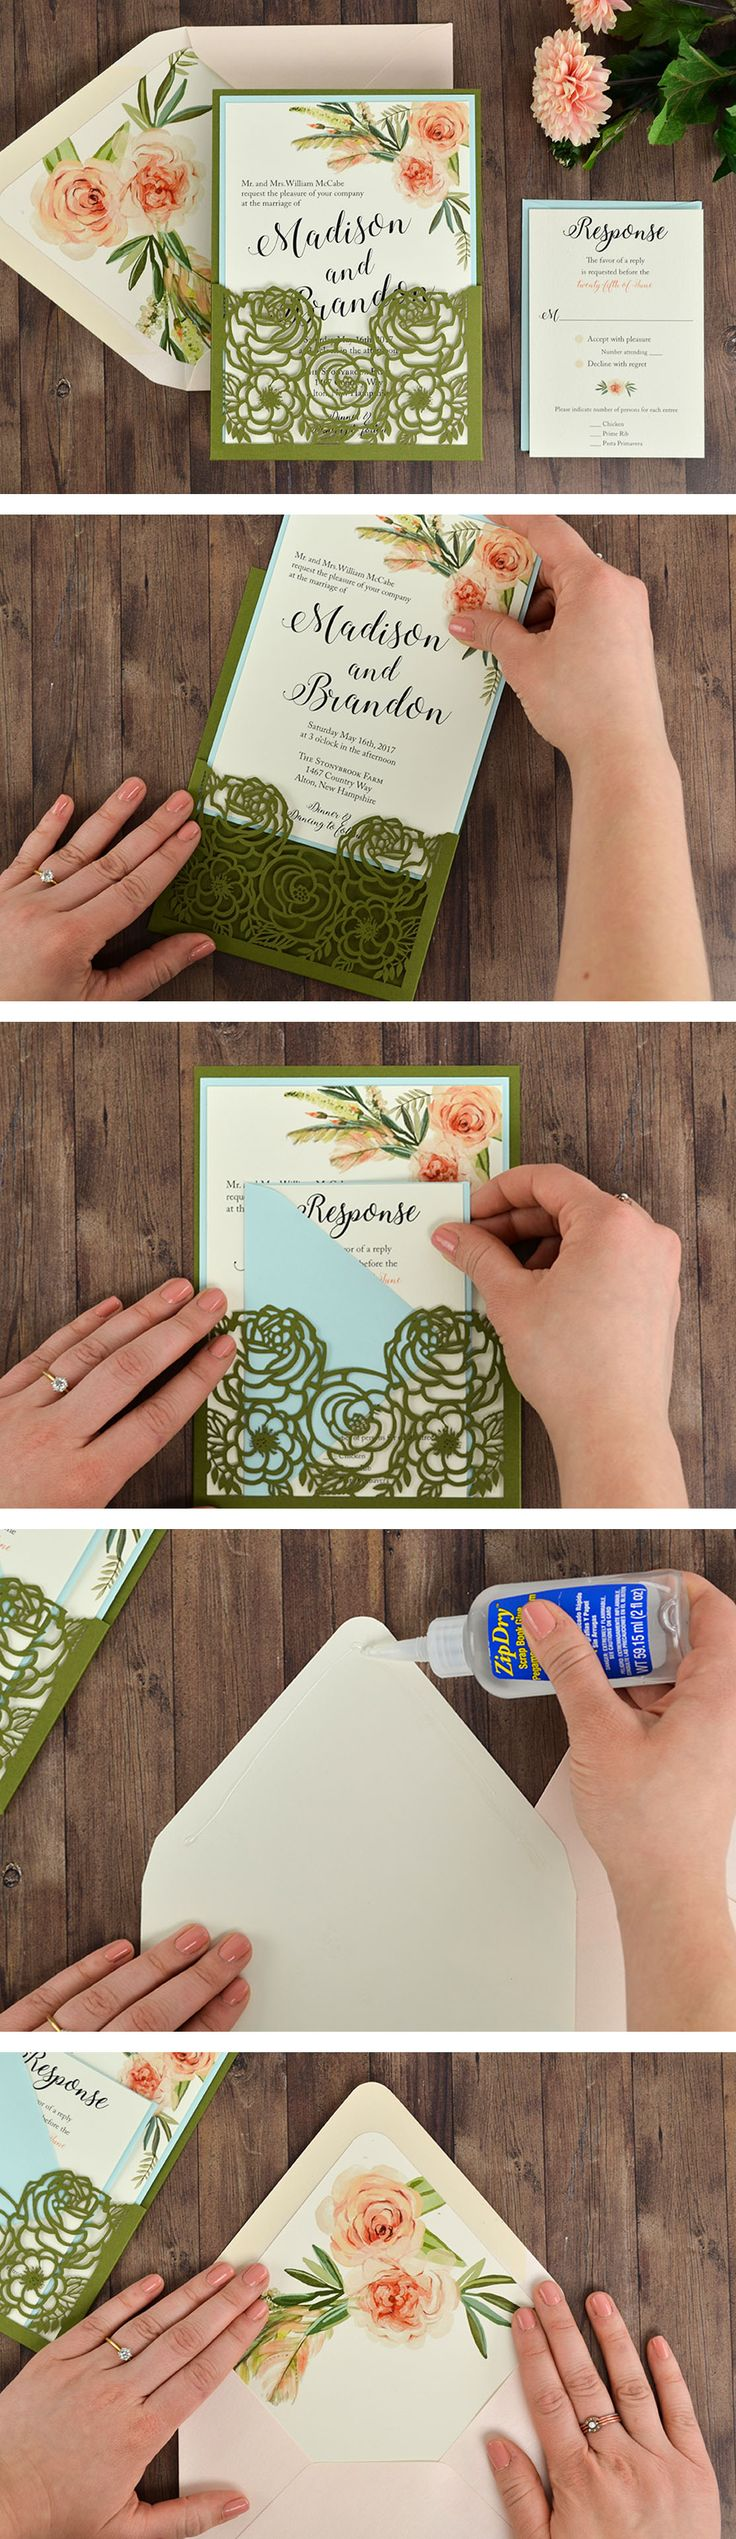 A Laser cut Wedding Invitation that's easy and affordable to DIY. Featuring a free invitation template, floral laser designs, and a green and blush color palette.